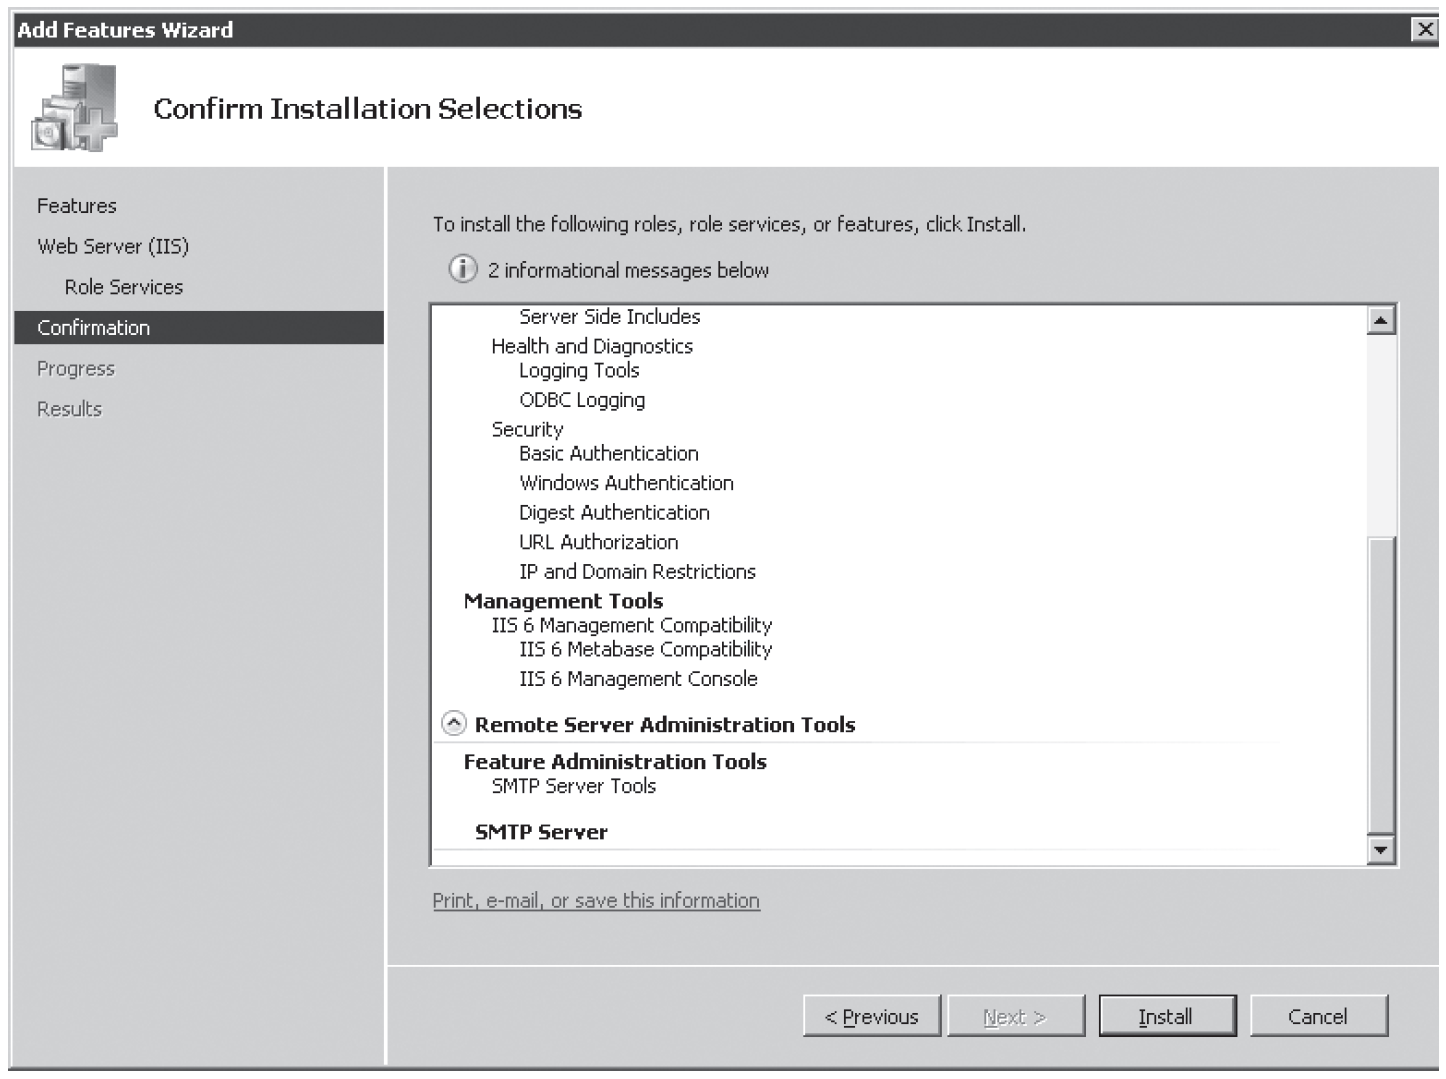 Figure 6-16 Confirm Installation